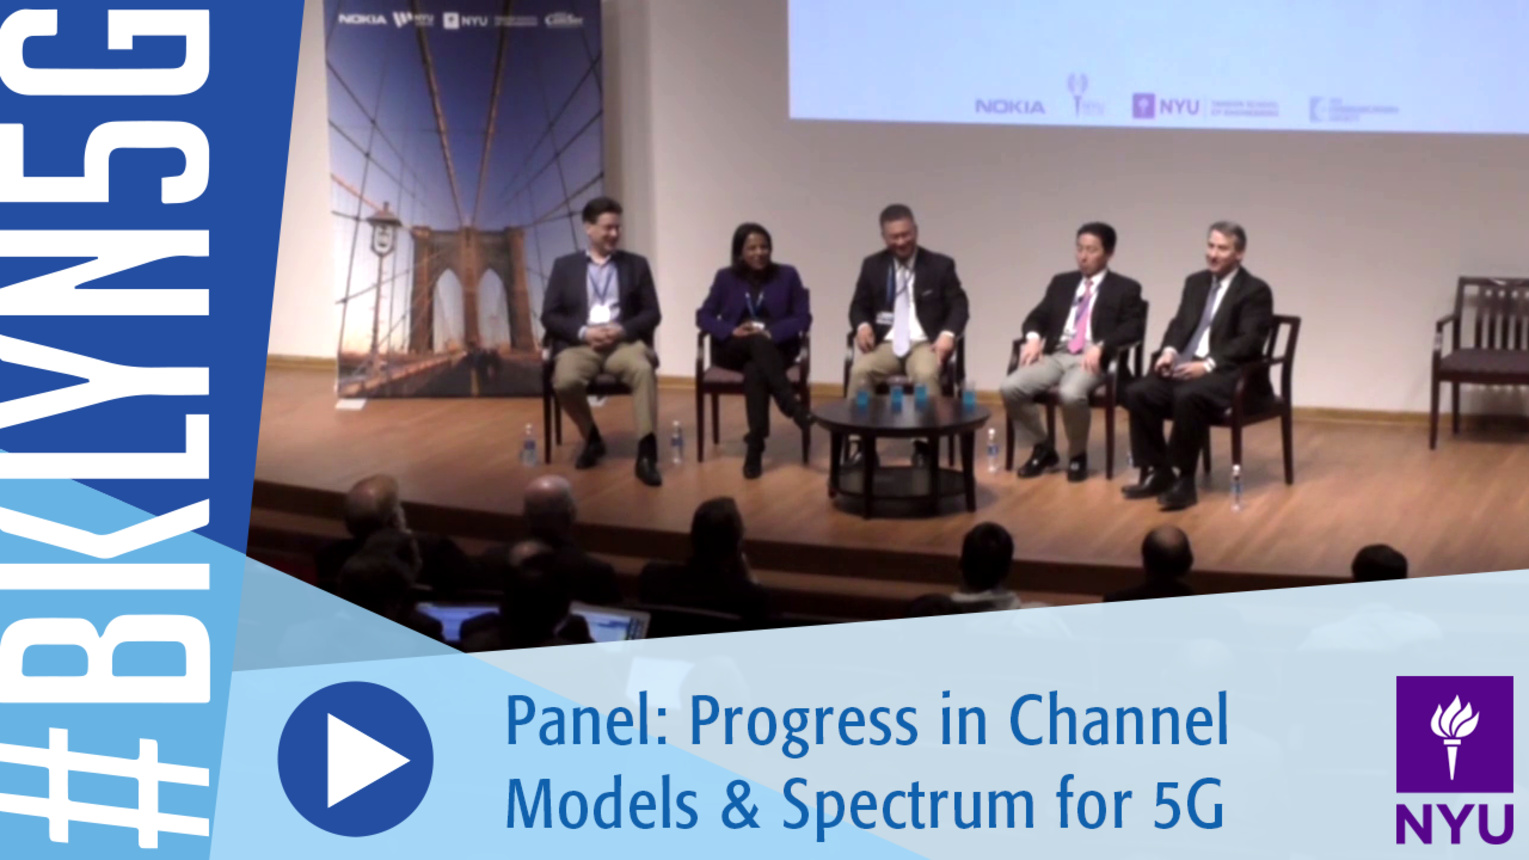 Brooklyn 5G 2016: Panel on Progress in Channel Models and Spectrum for 5G